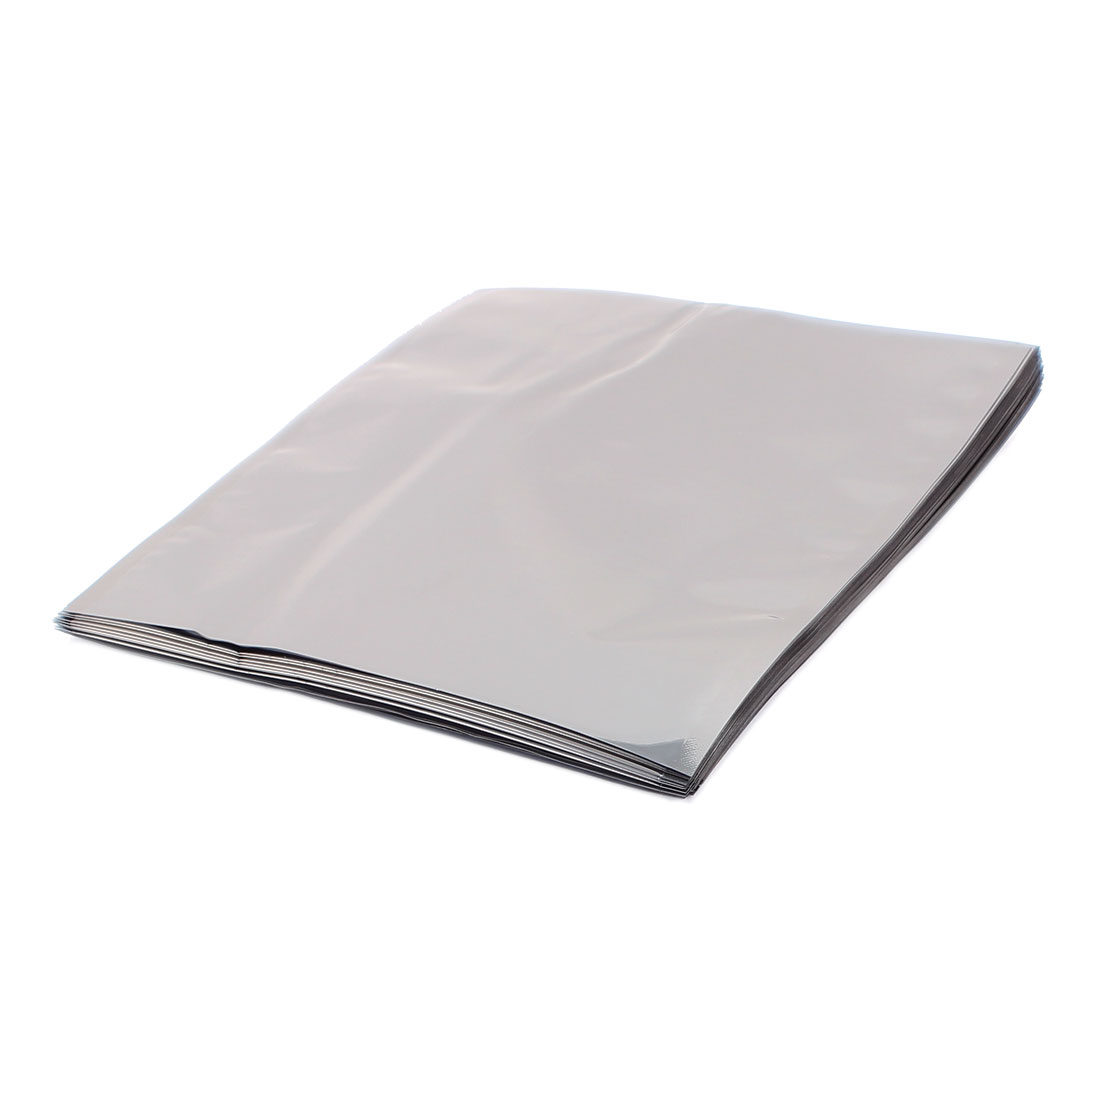 50 Pcs 145mm x 170mm Silver Tone Flat Open Top Anti Static Bag For Electronics